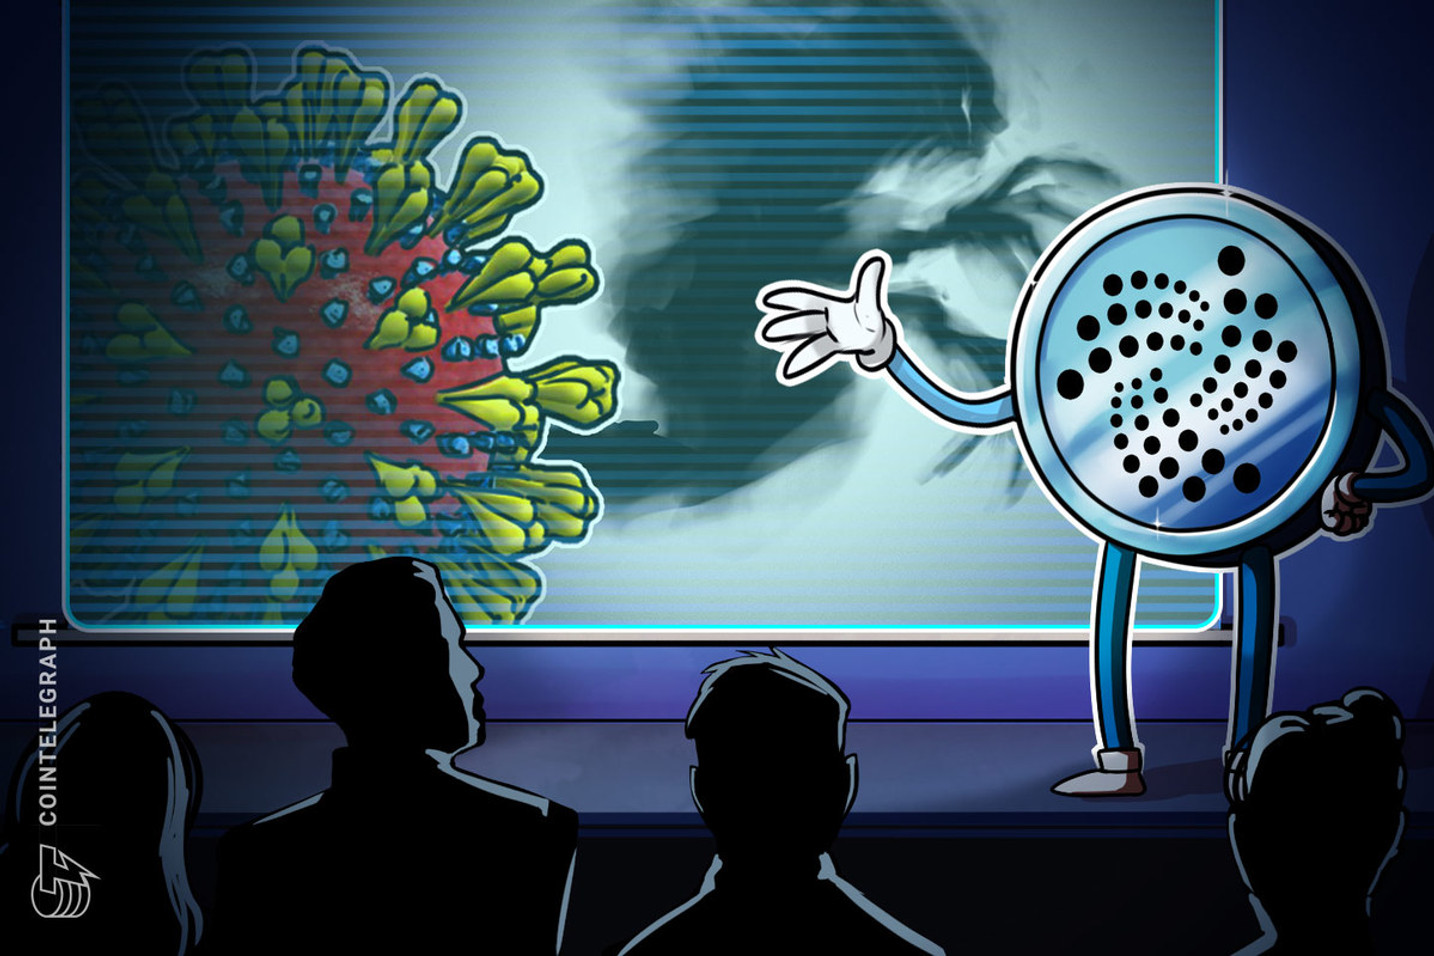 Madrid Team Builds Iota-Based Decentralized Information Platform to Combat Coronavirus